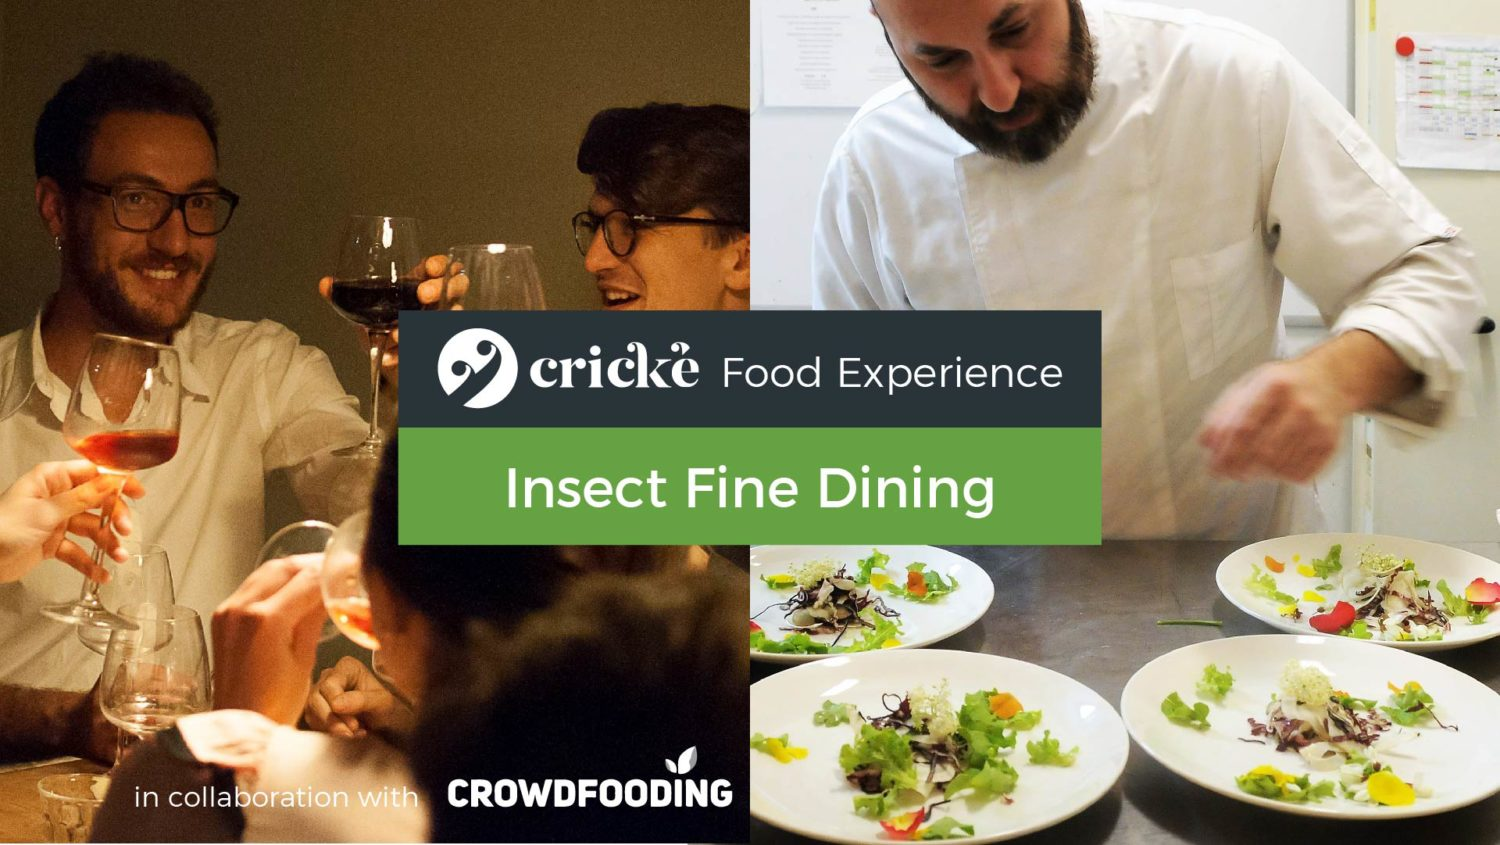 Insect Fine Dining